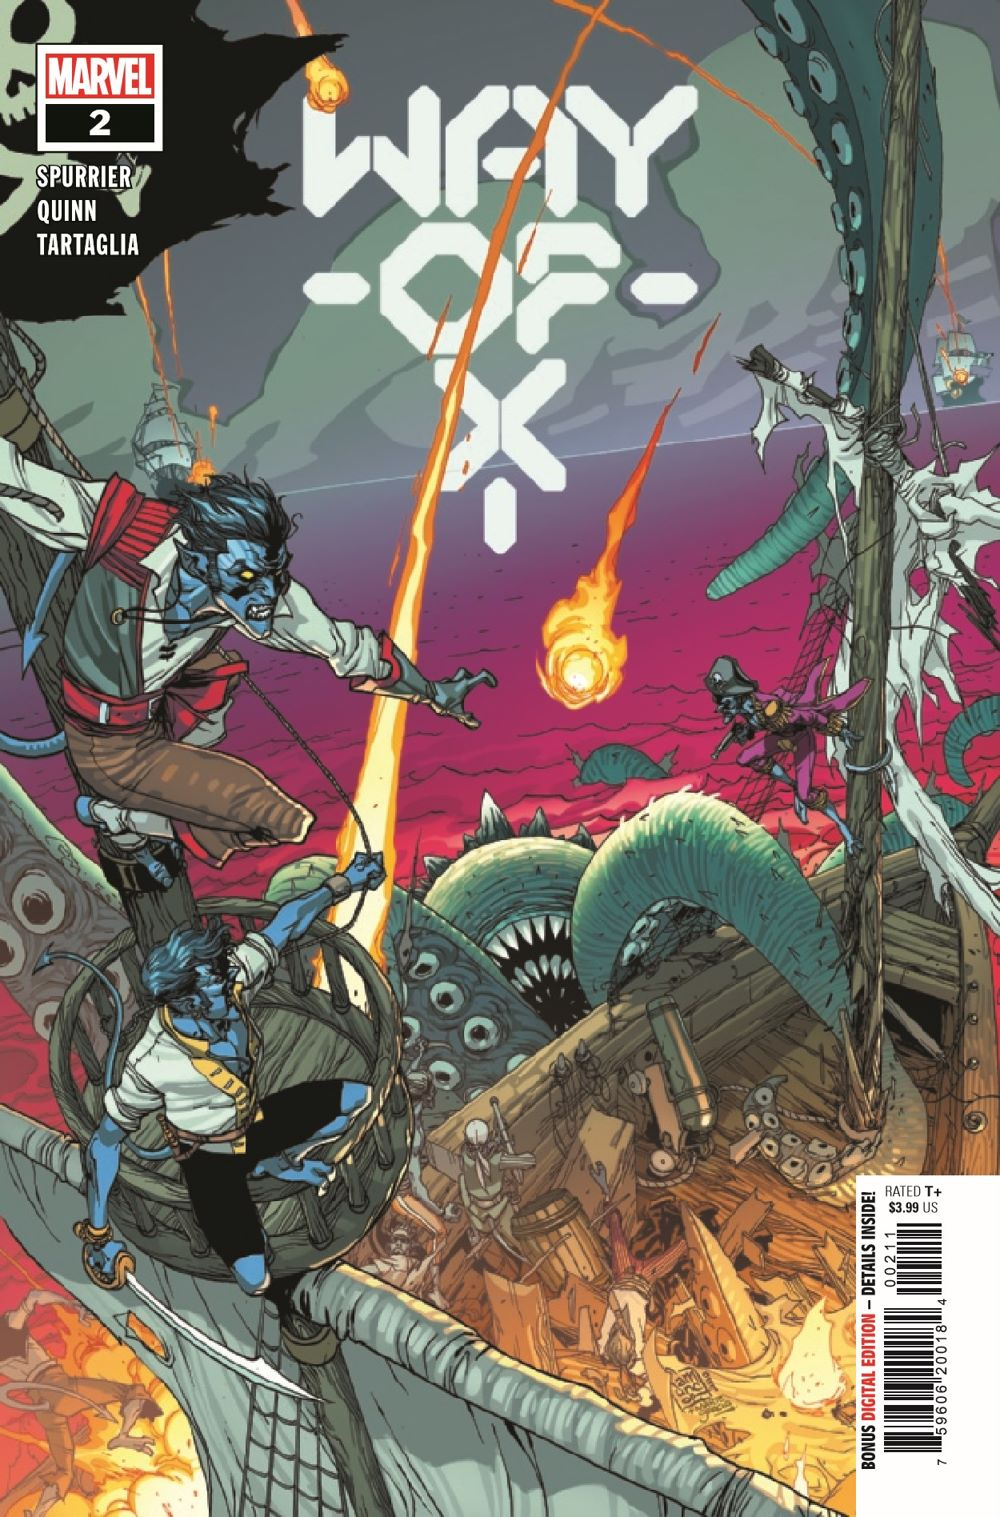 WAYOFX2021002_Preview-1 ComicList Previews: WAY OF X #2